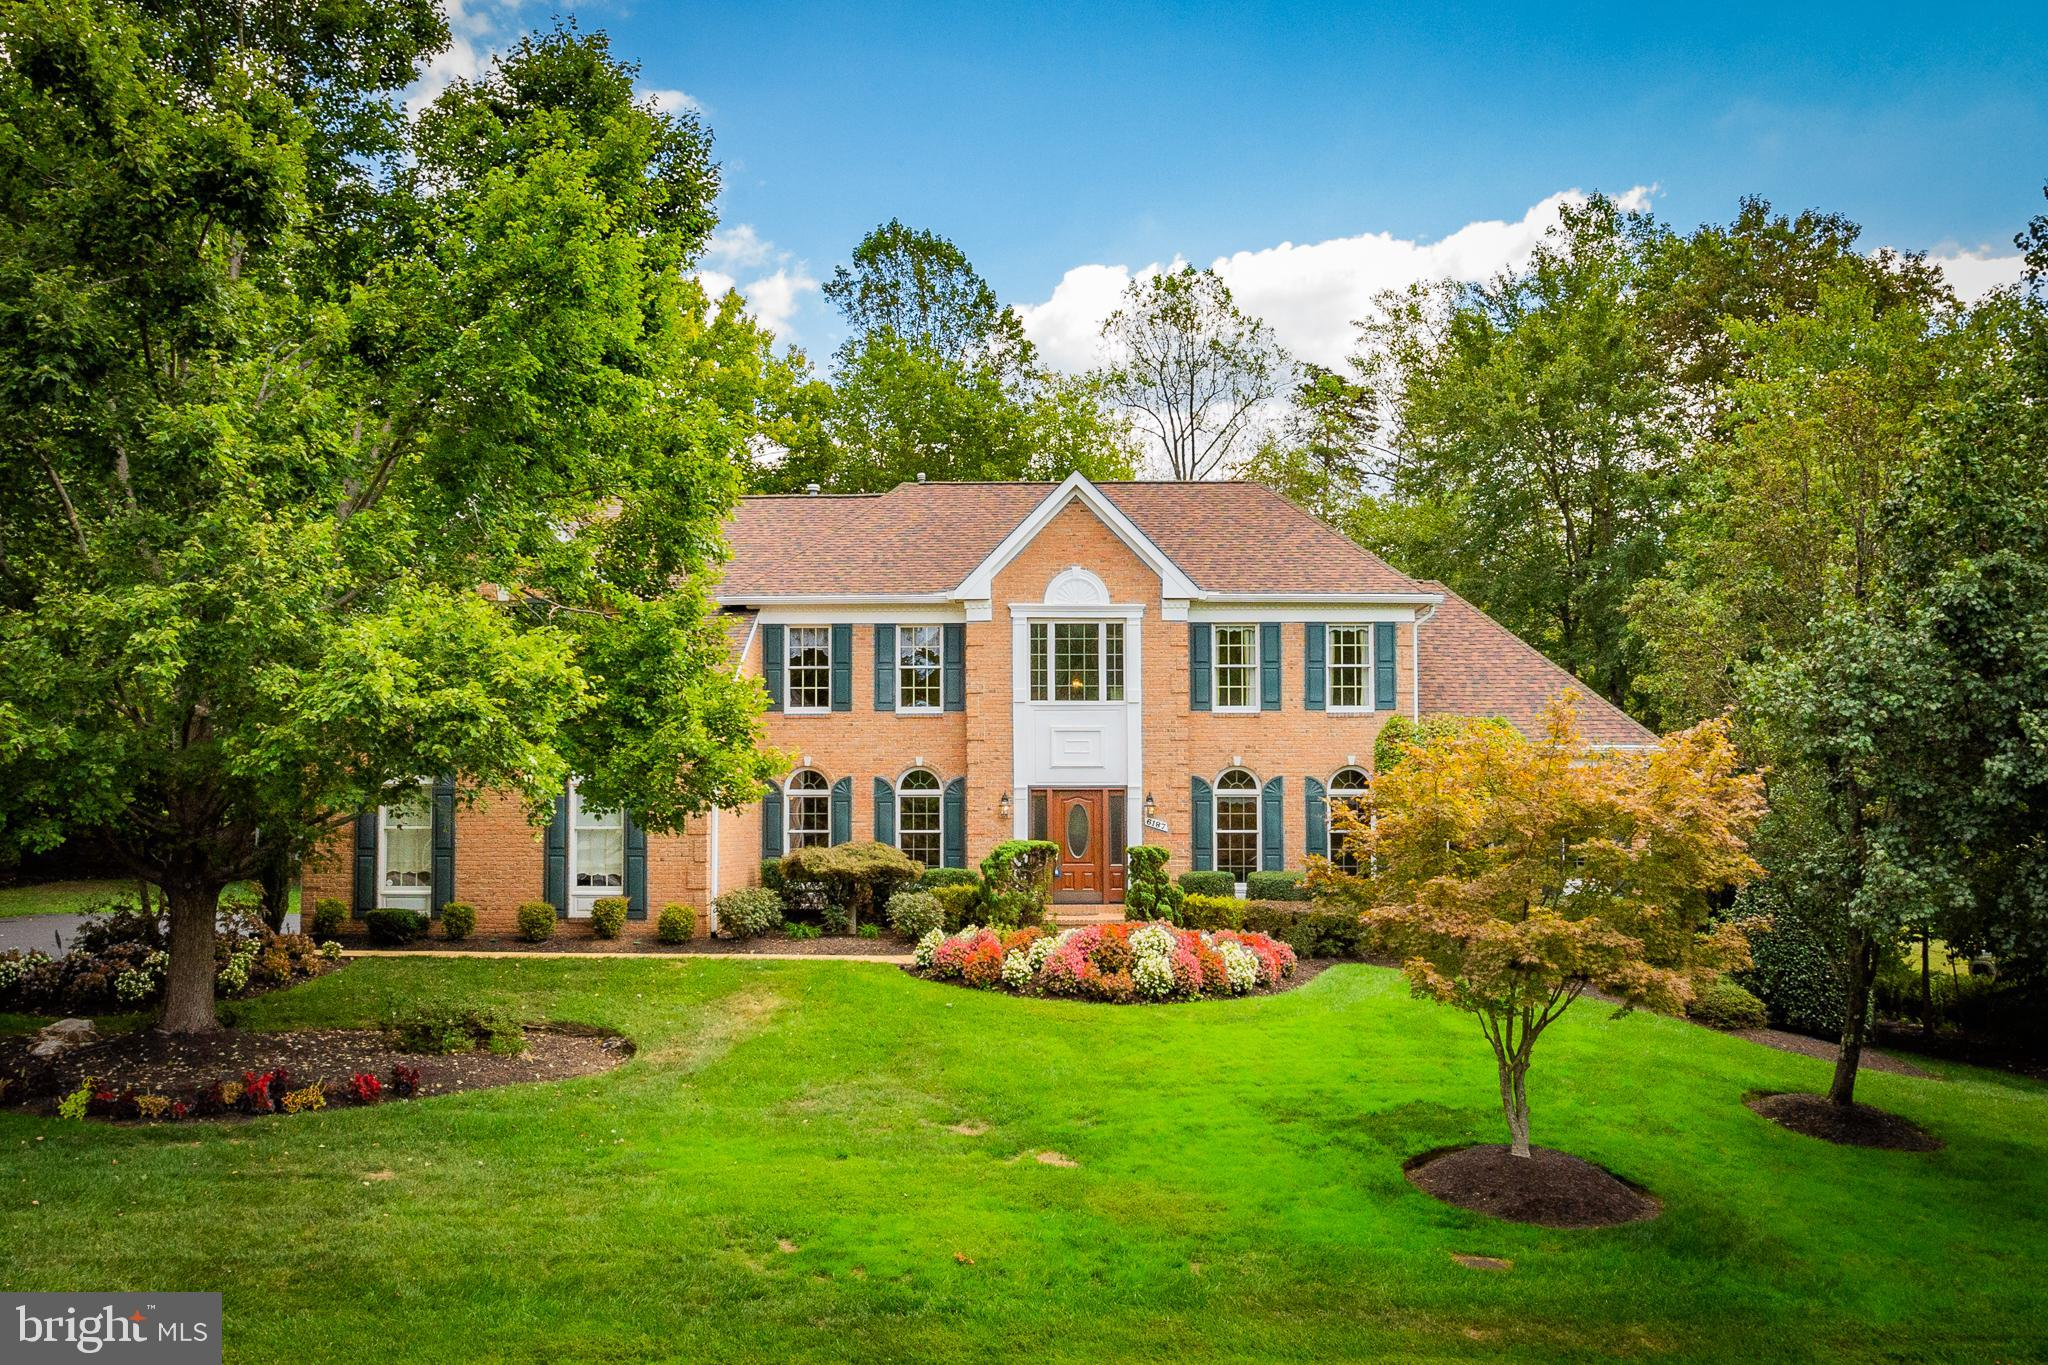 6187 FREDS OAK ROAD, FAIRFAX STATION, VA 22039